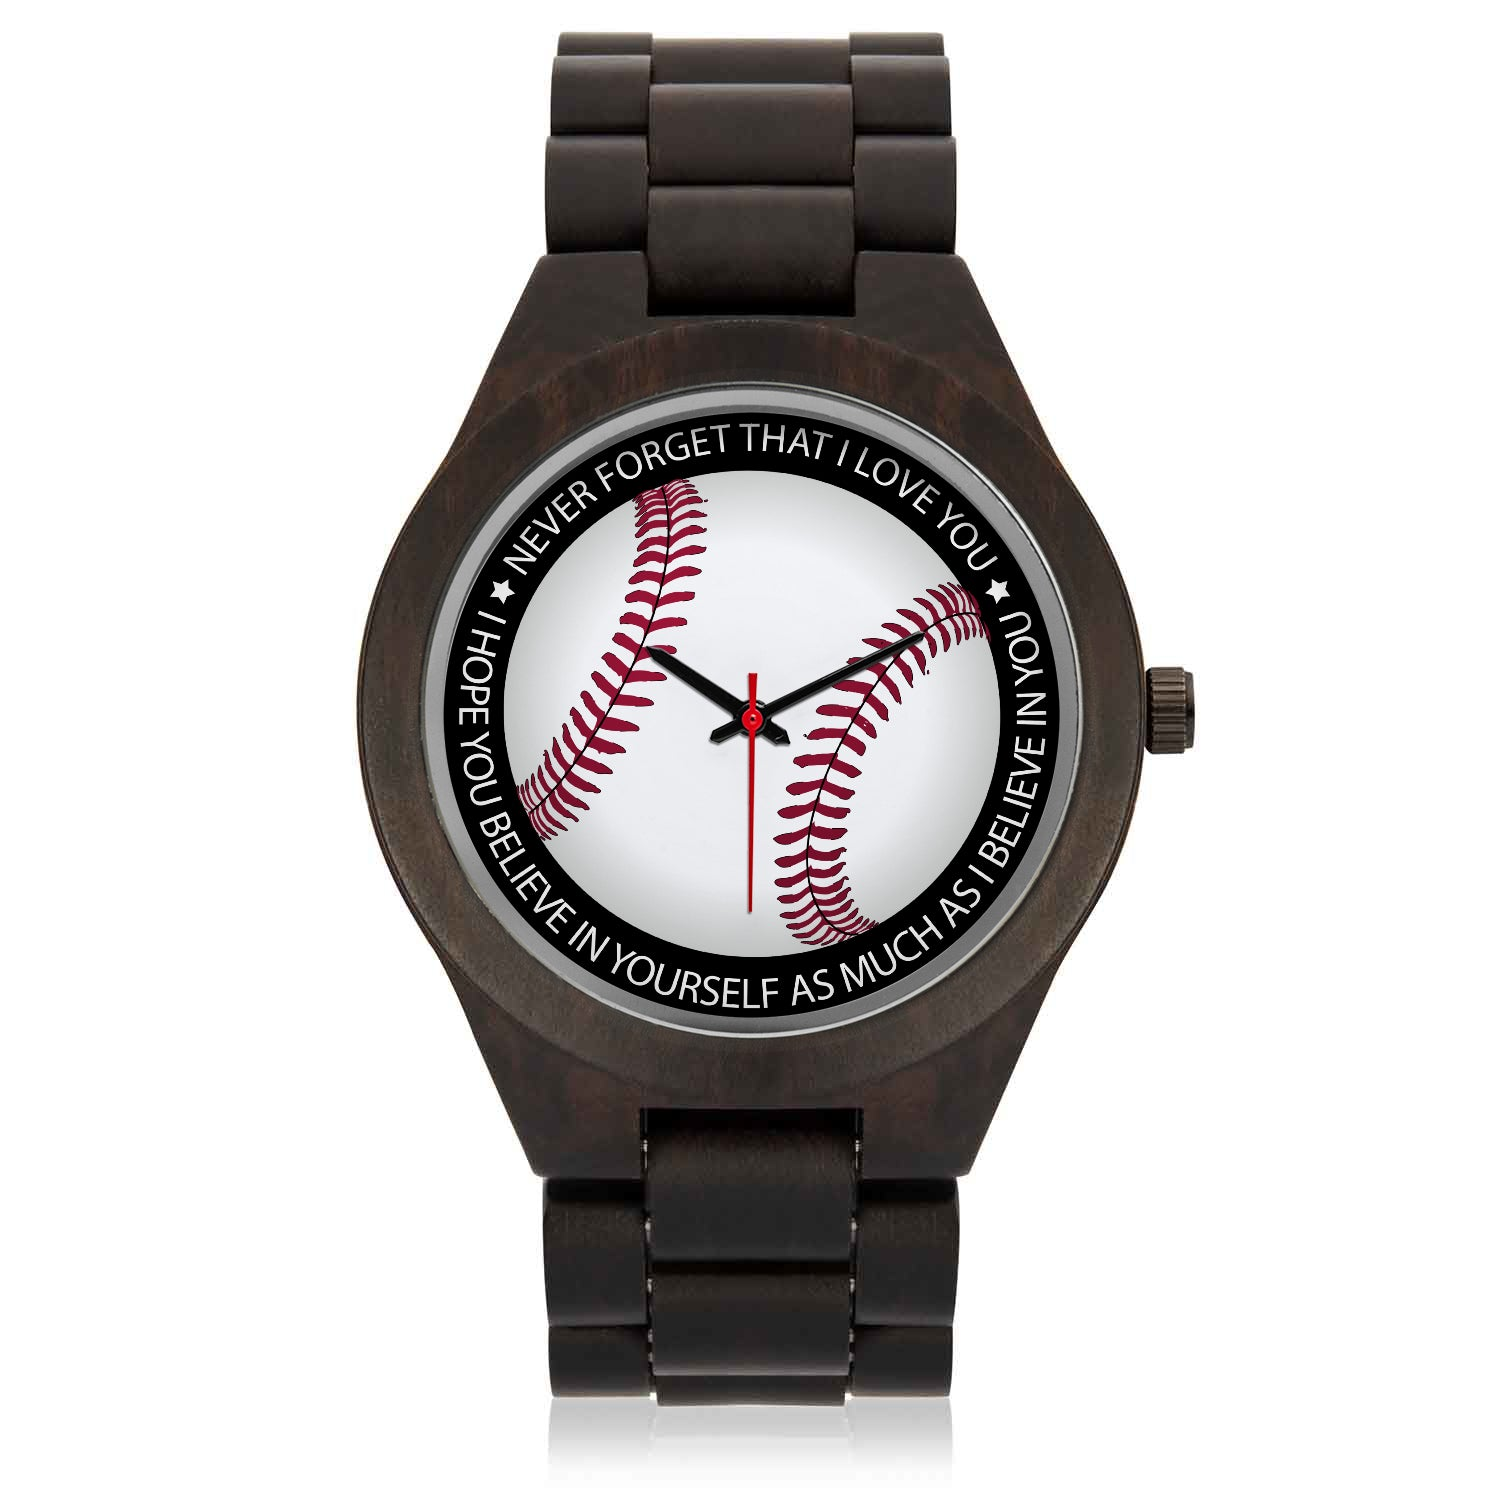 BASEBALL WOOD WATCH - BELIEVE IN YOURSELF